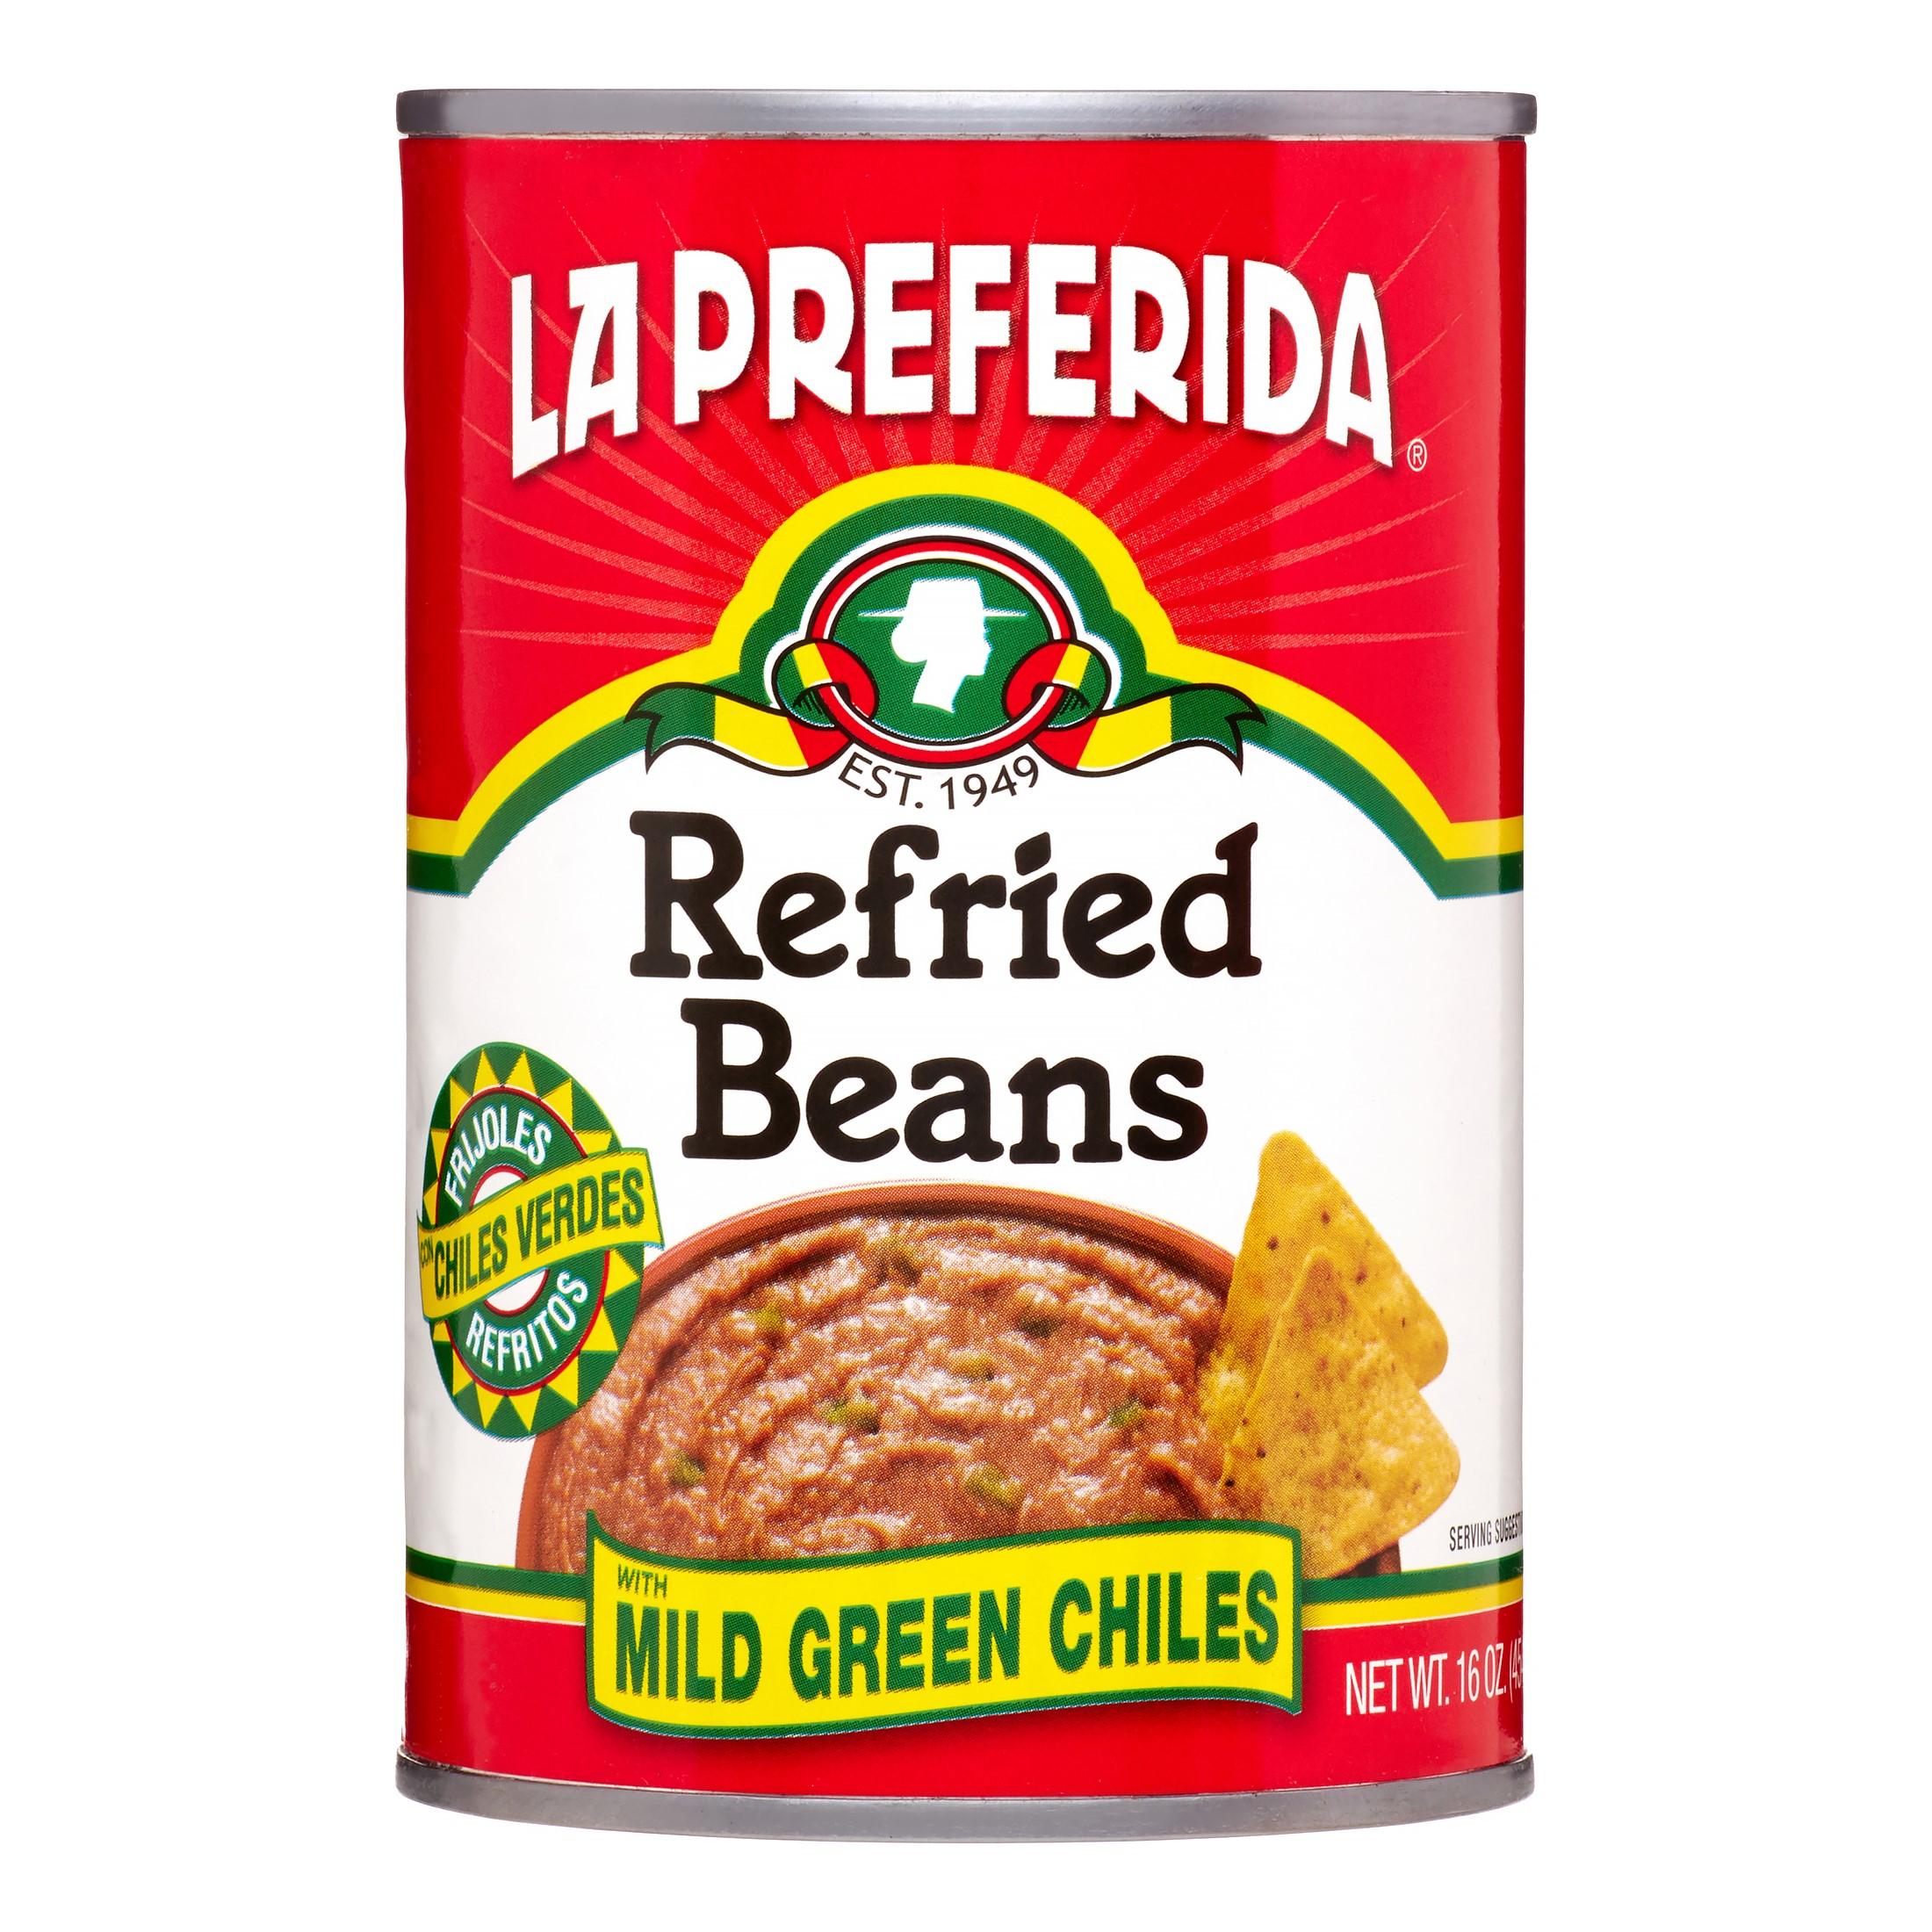 La Preferida Refried Beans With Mild Green Chiles, 16 oz